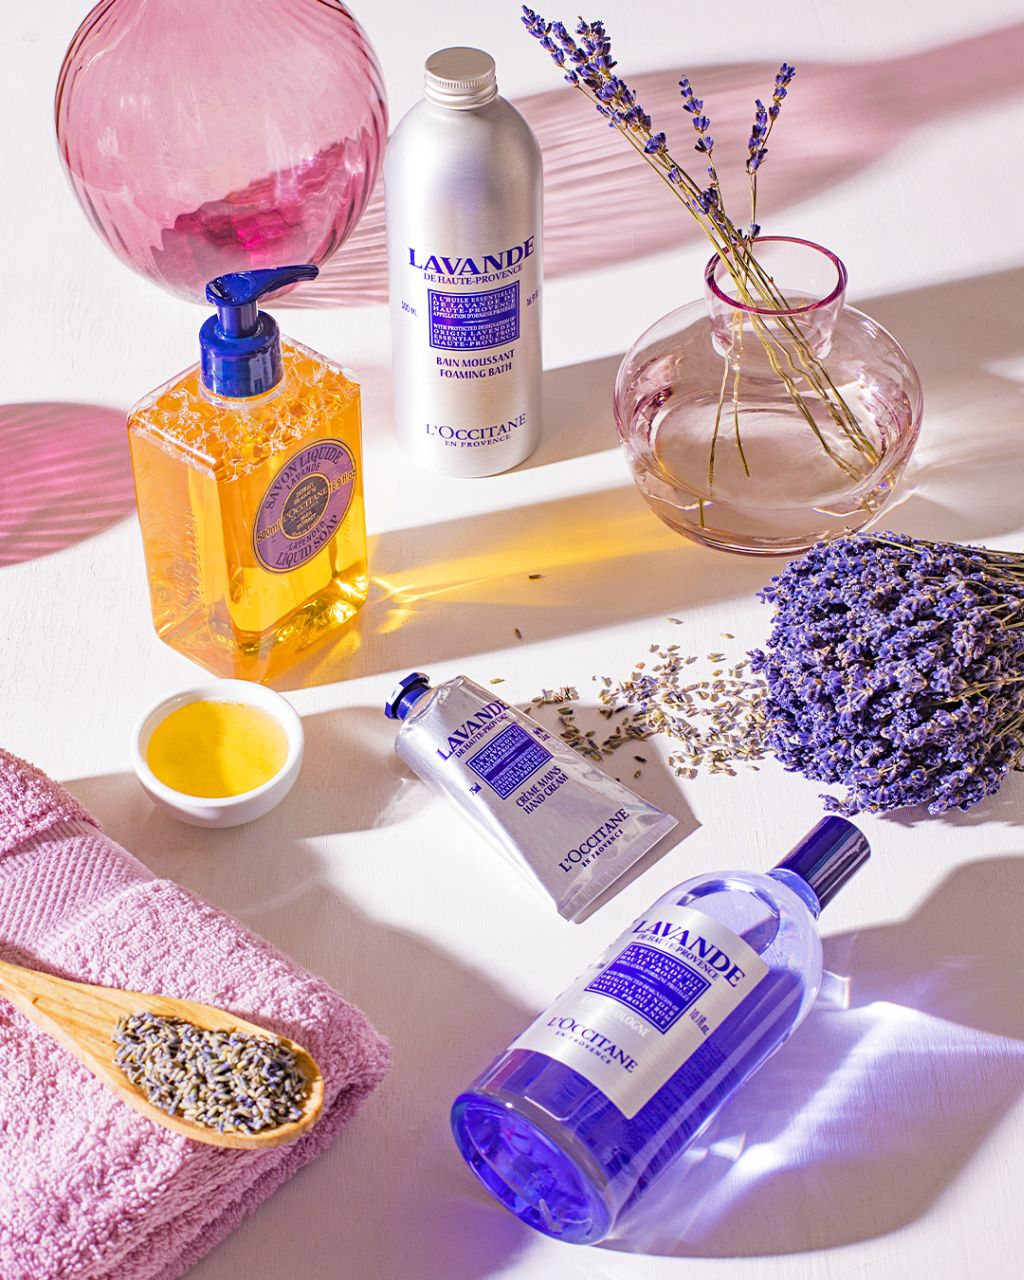 Lavender products of L'Occitane with Essential Oi, Hand Cream and Liquid Soap, with L'Occitane supporting research institutes to fight © L'Occitane